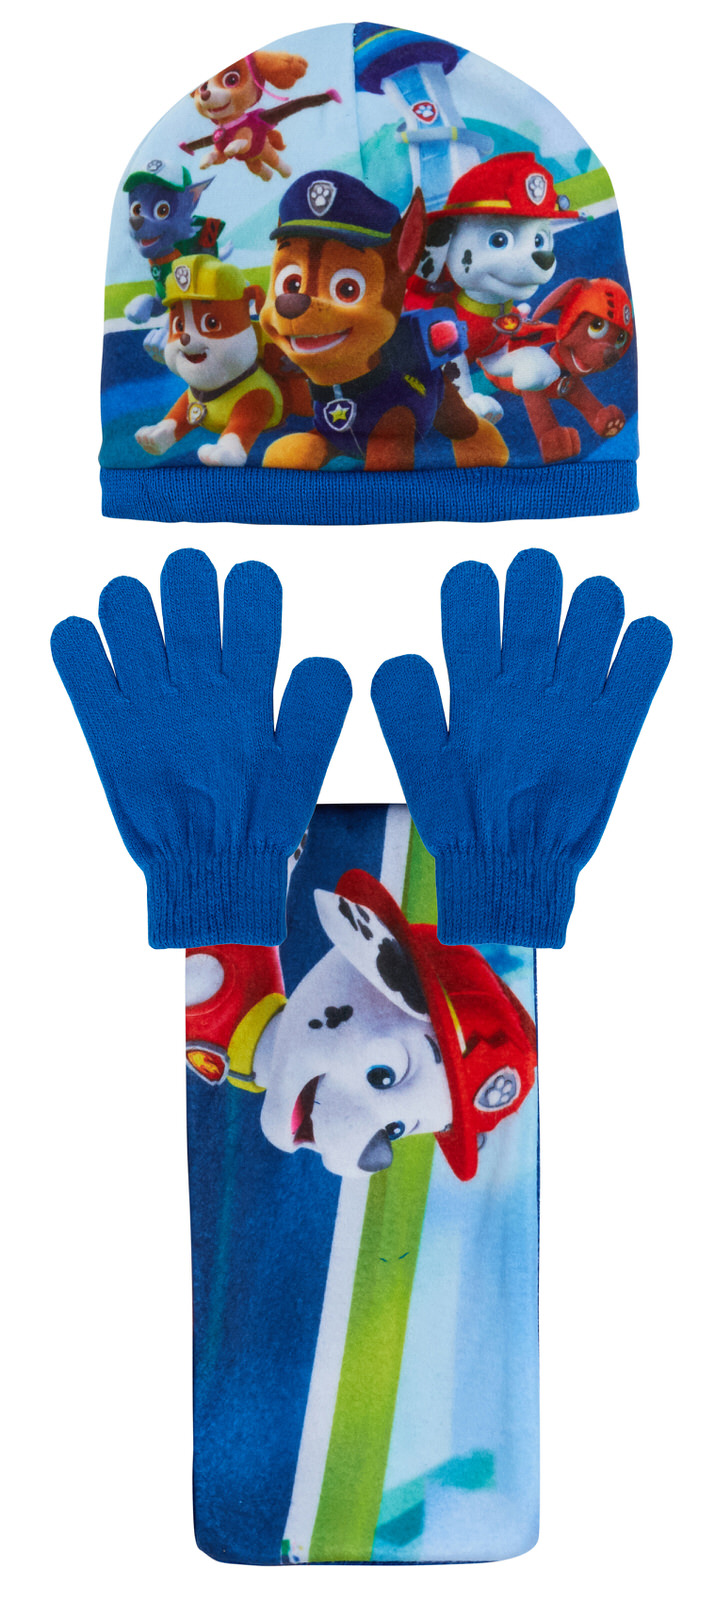 Gloves 3 piece Knitted Winter Set Kids Xmas Gift Paw Patrol Woolly Hat Scarf